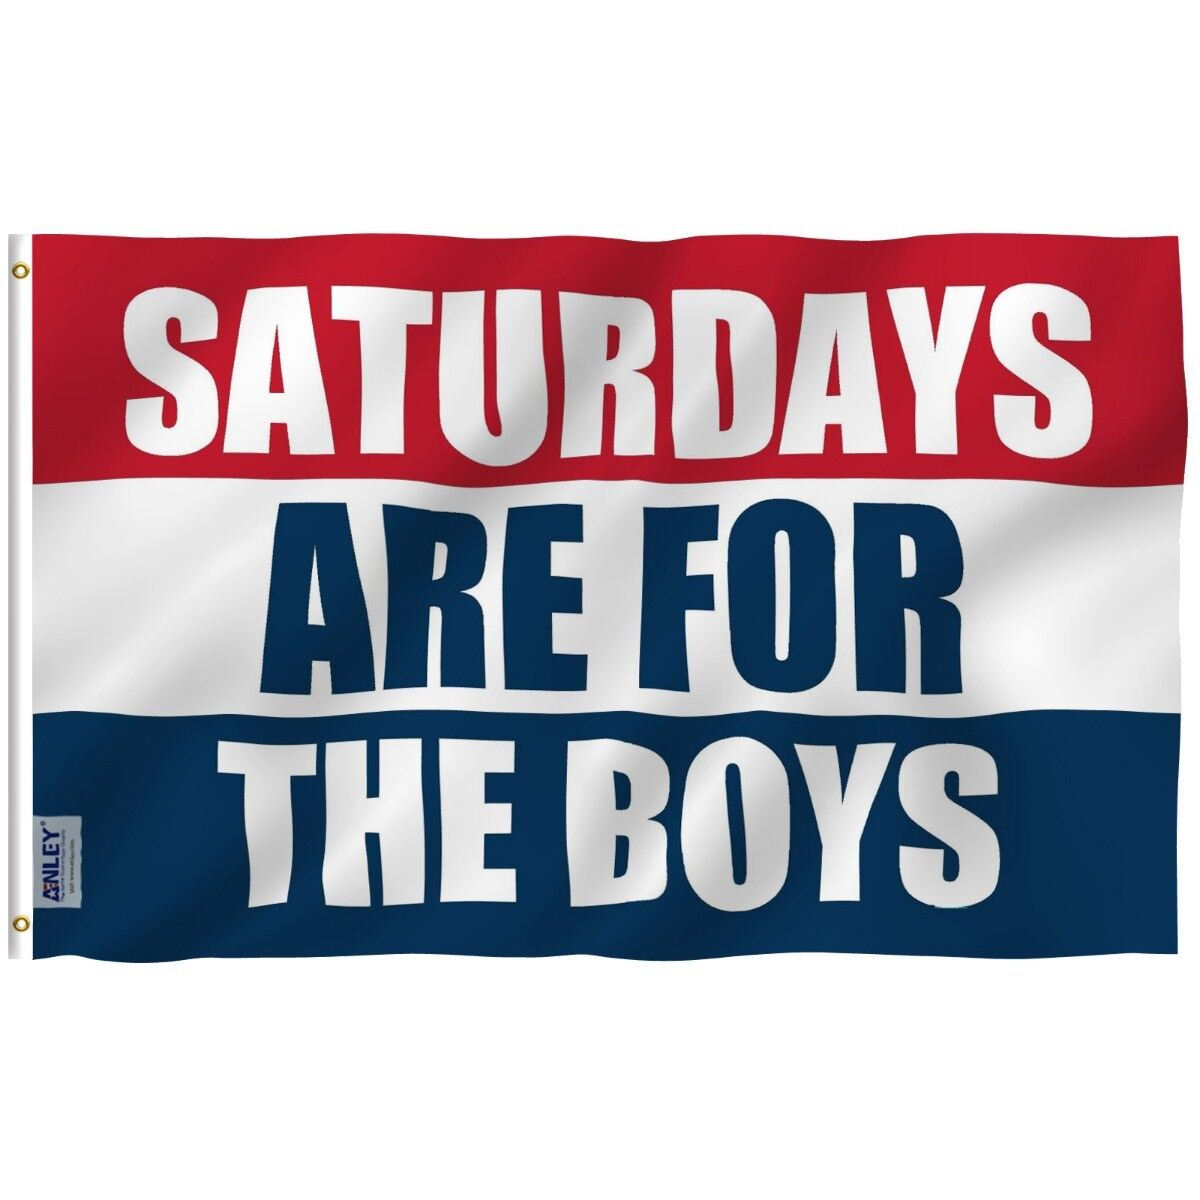 ANLEY 3x5 feet Saturdays Are For The Boys Flag Polyester Dou